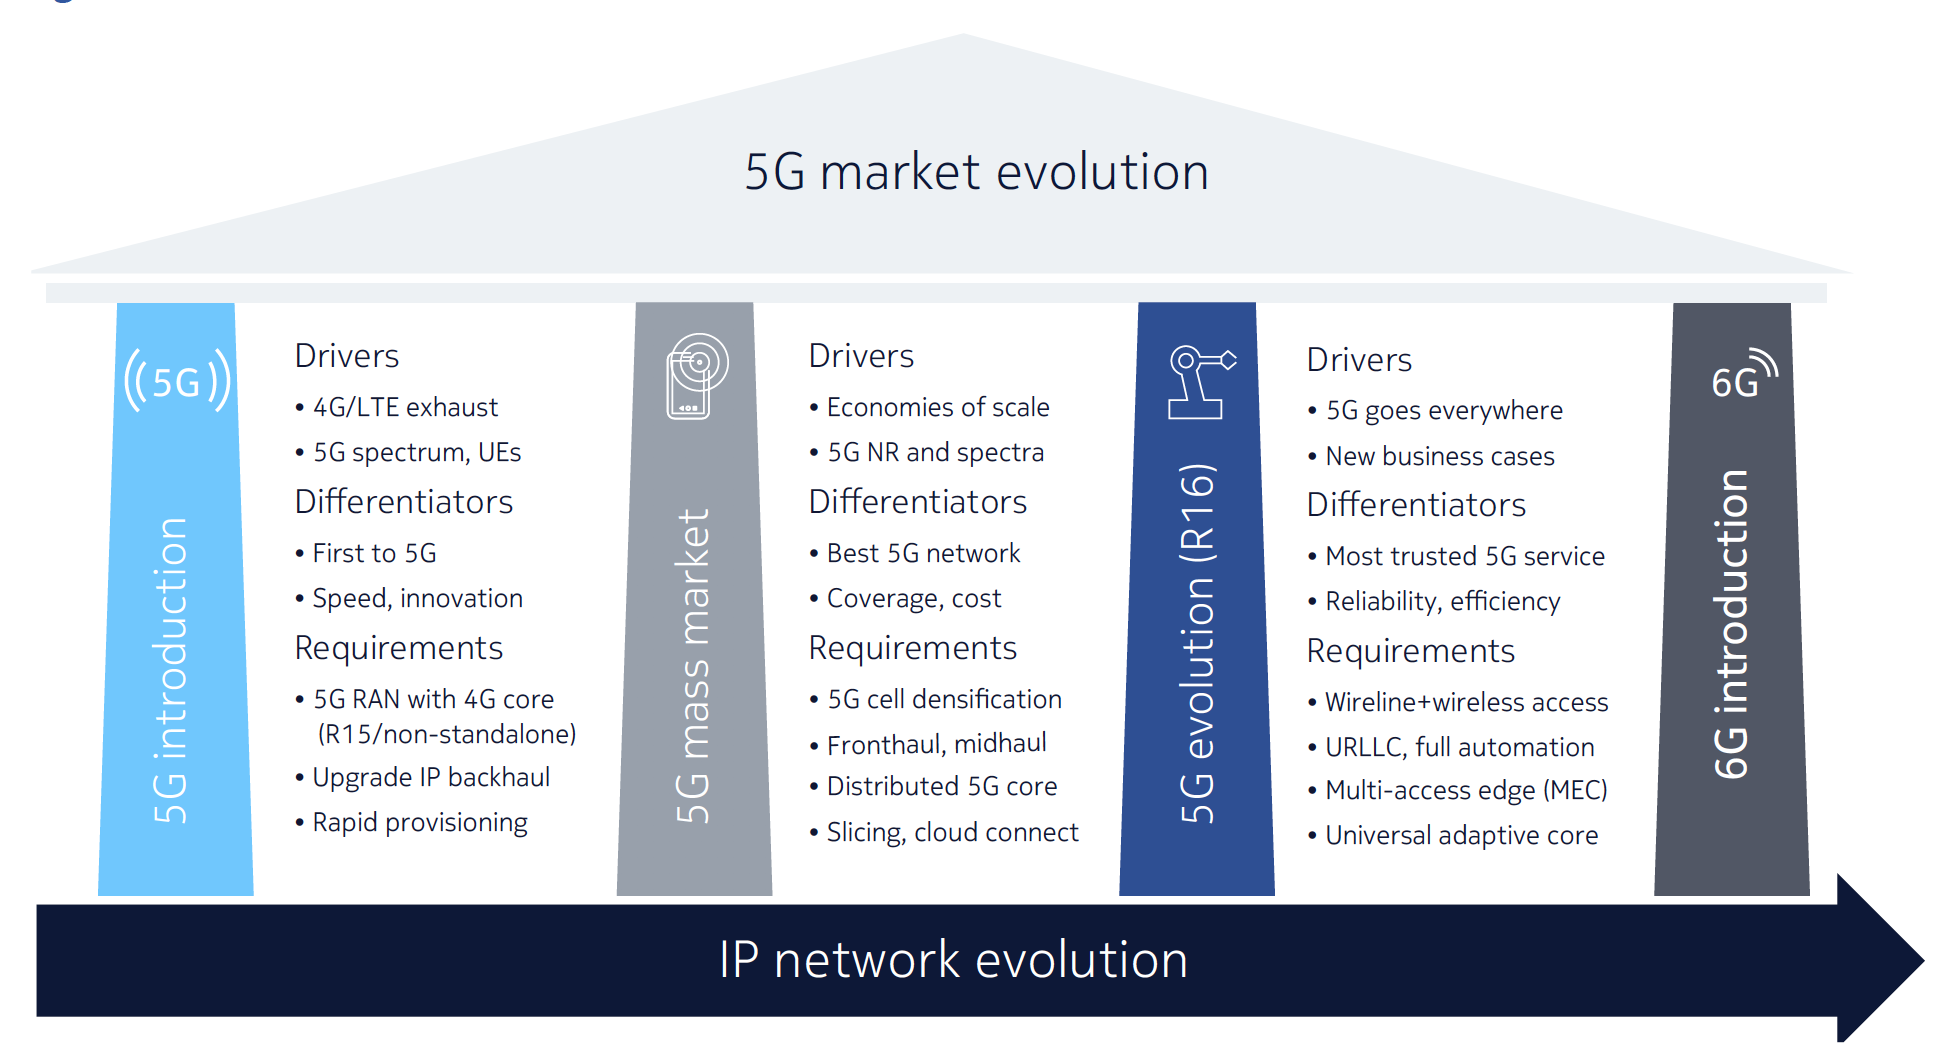 Figure 1. IP network evolution for the 5G era